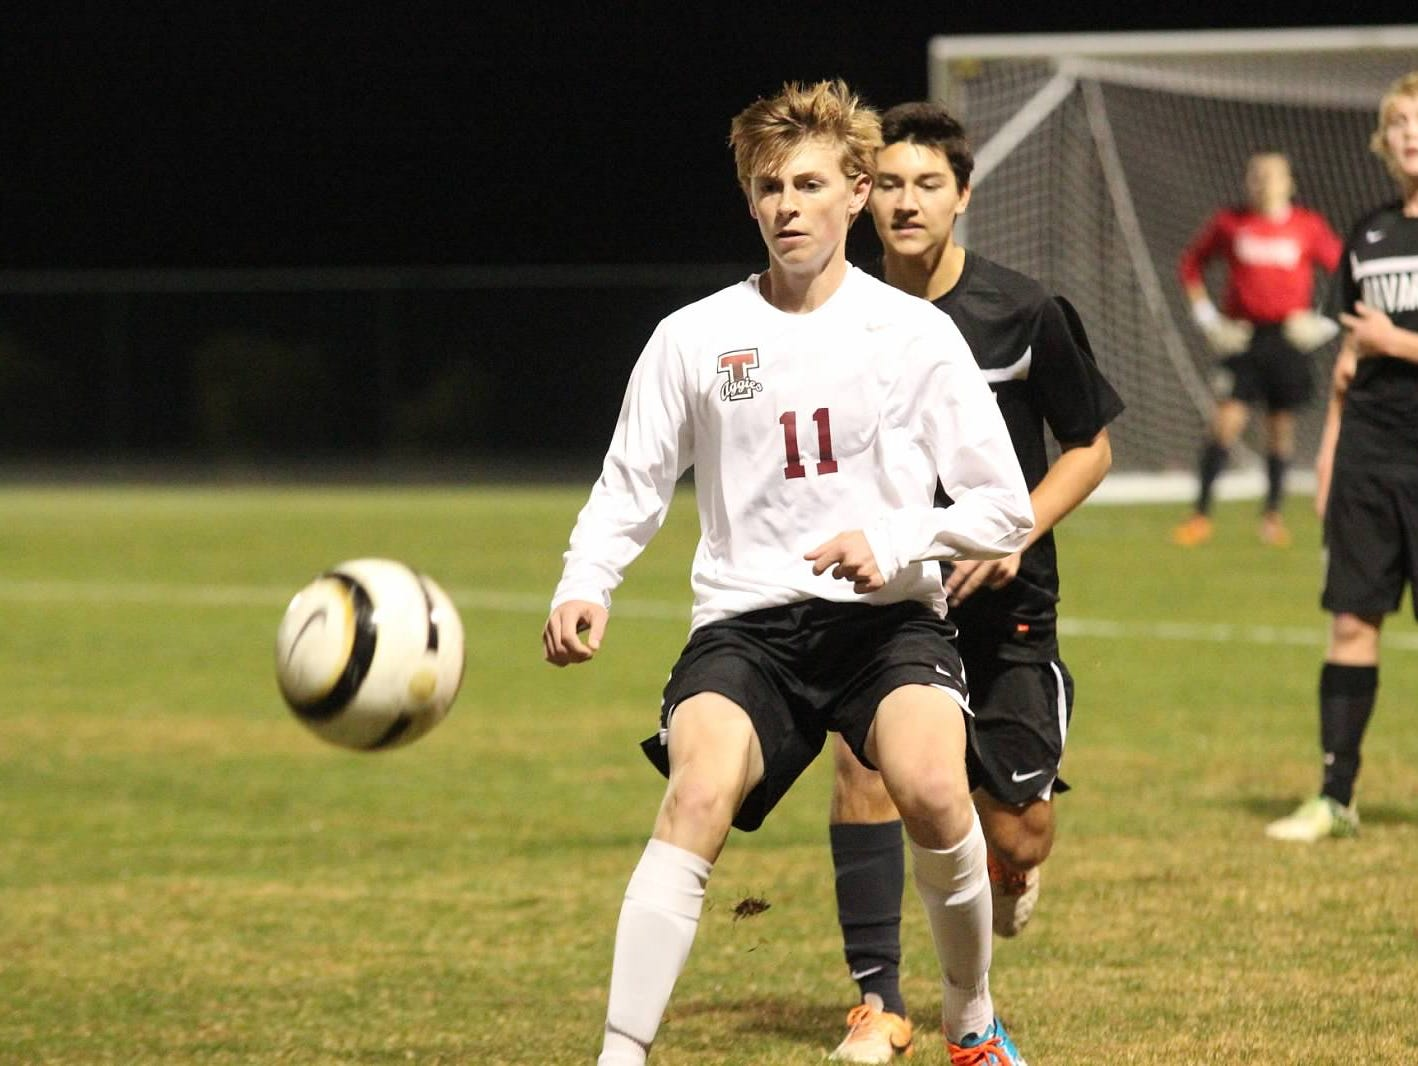 L.J. Estes (No. 11) has been pivotal in the hot start (5-0, 4-0) for the Tate Aggies boys soccer team this season.